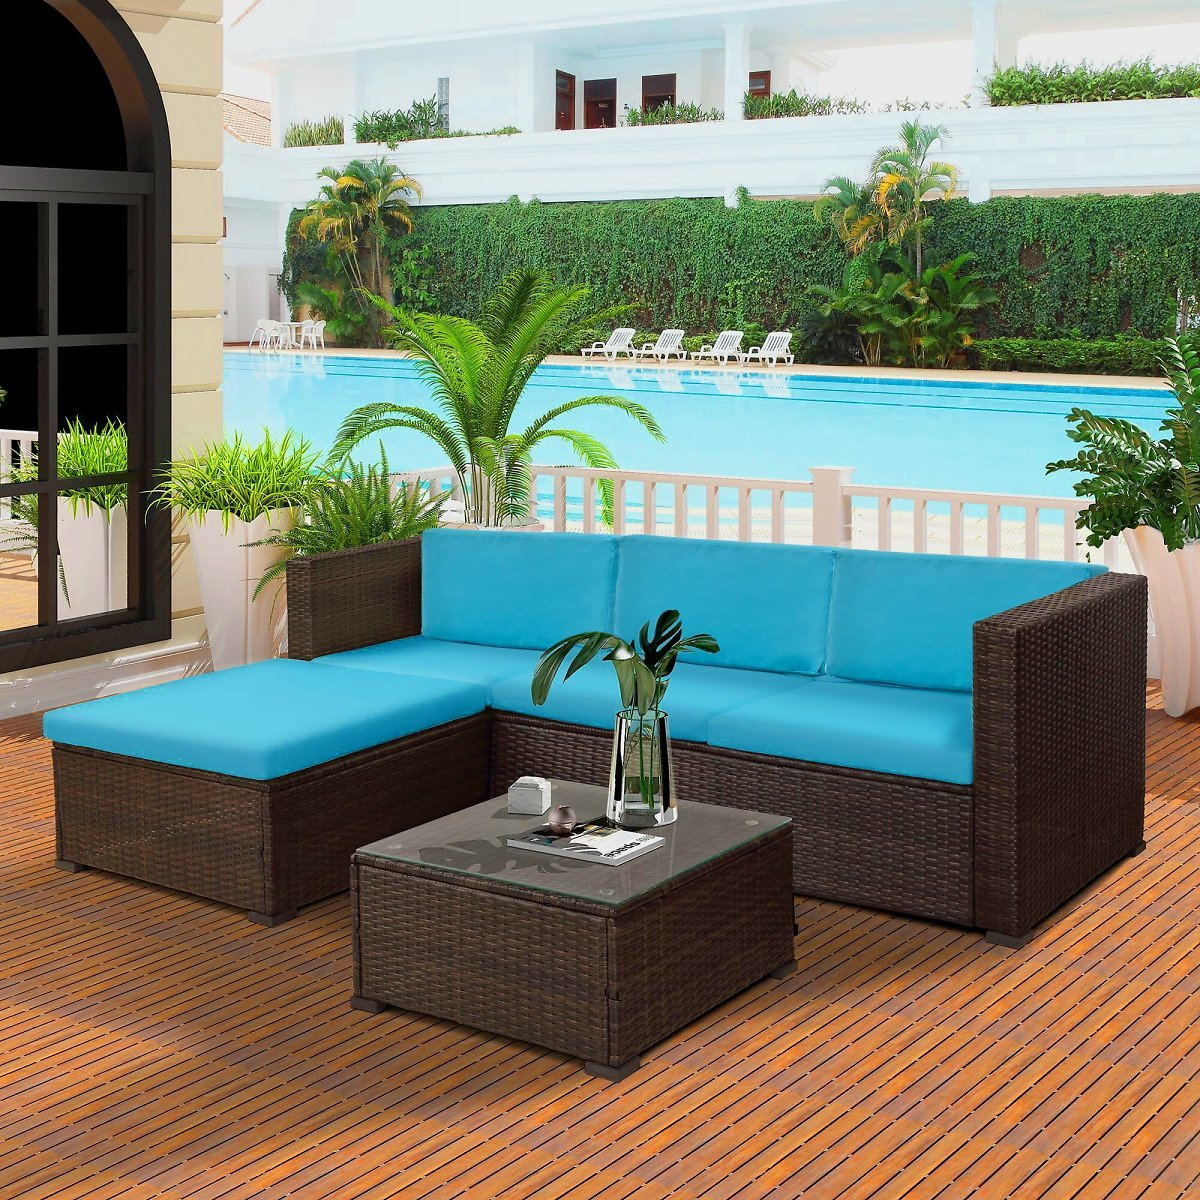 5-Piece-Outdoor-Rattan-Patio-Wicker-Sectional-Set-with-Blue-Seat-and-Back-Cushions-Tempered-Gla